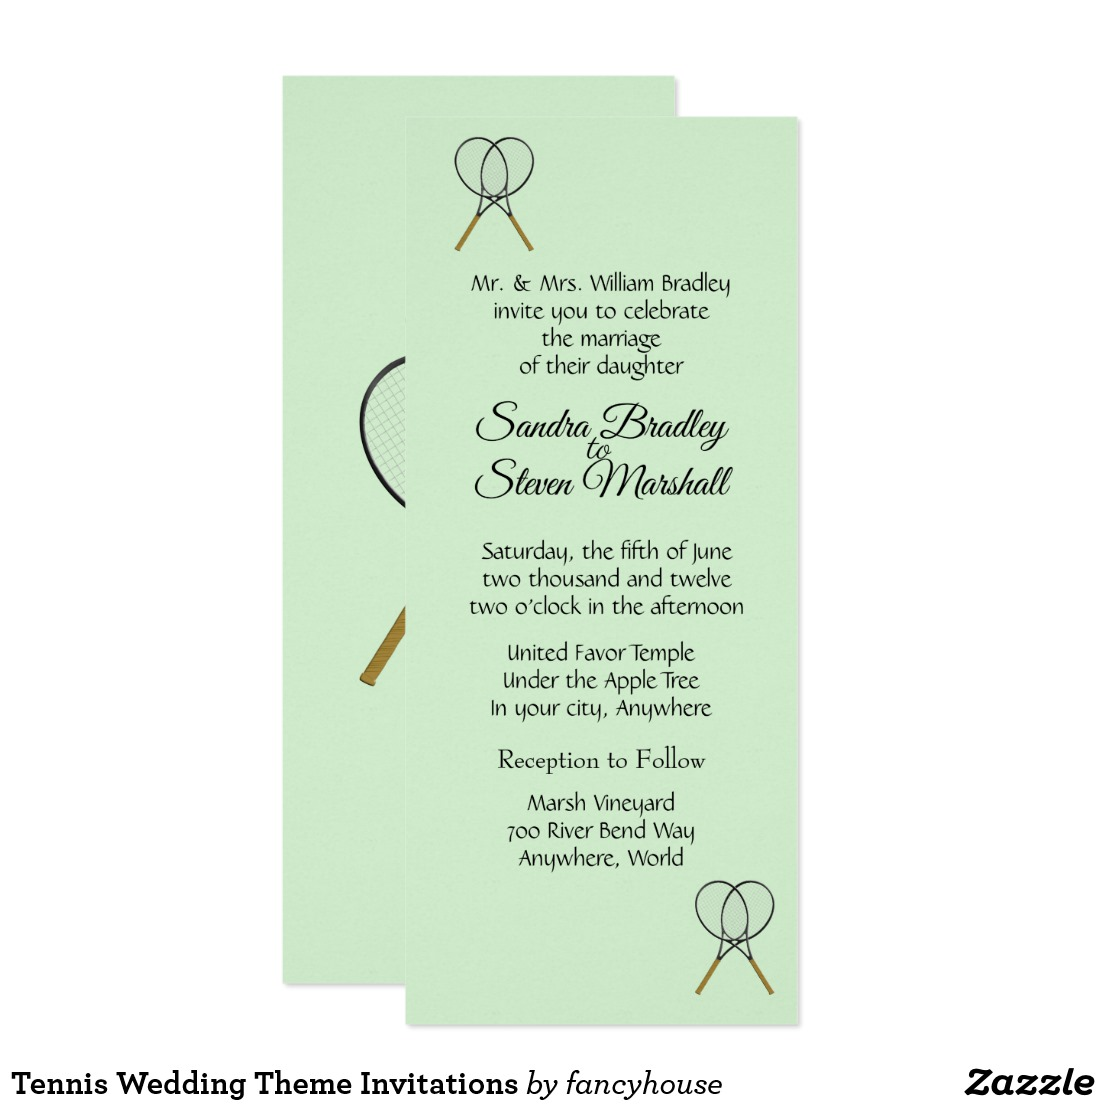 Tennis Wedding Theme Invitations